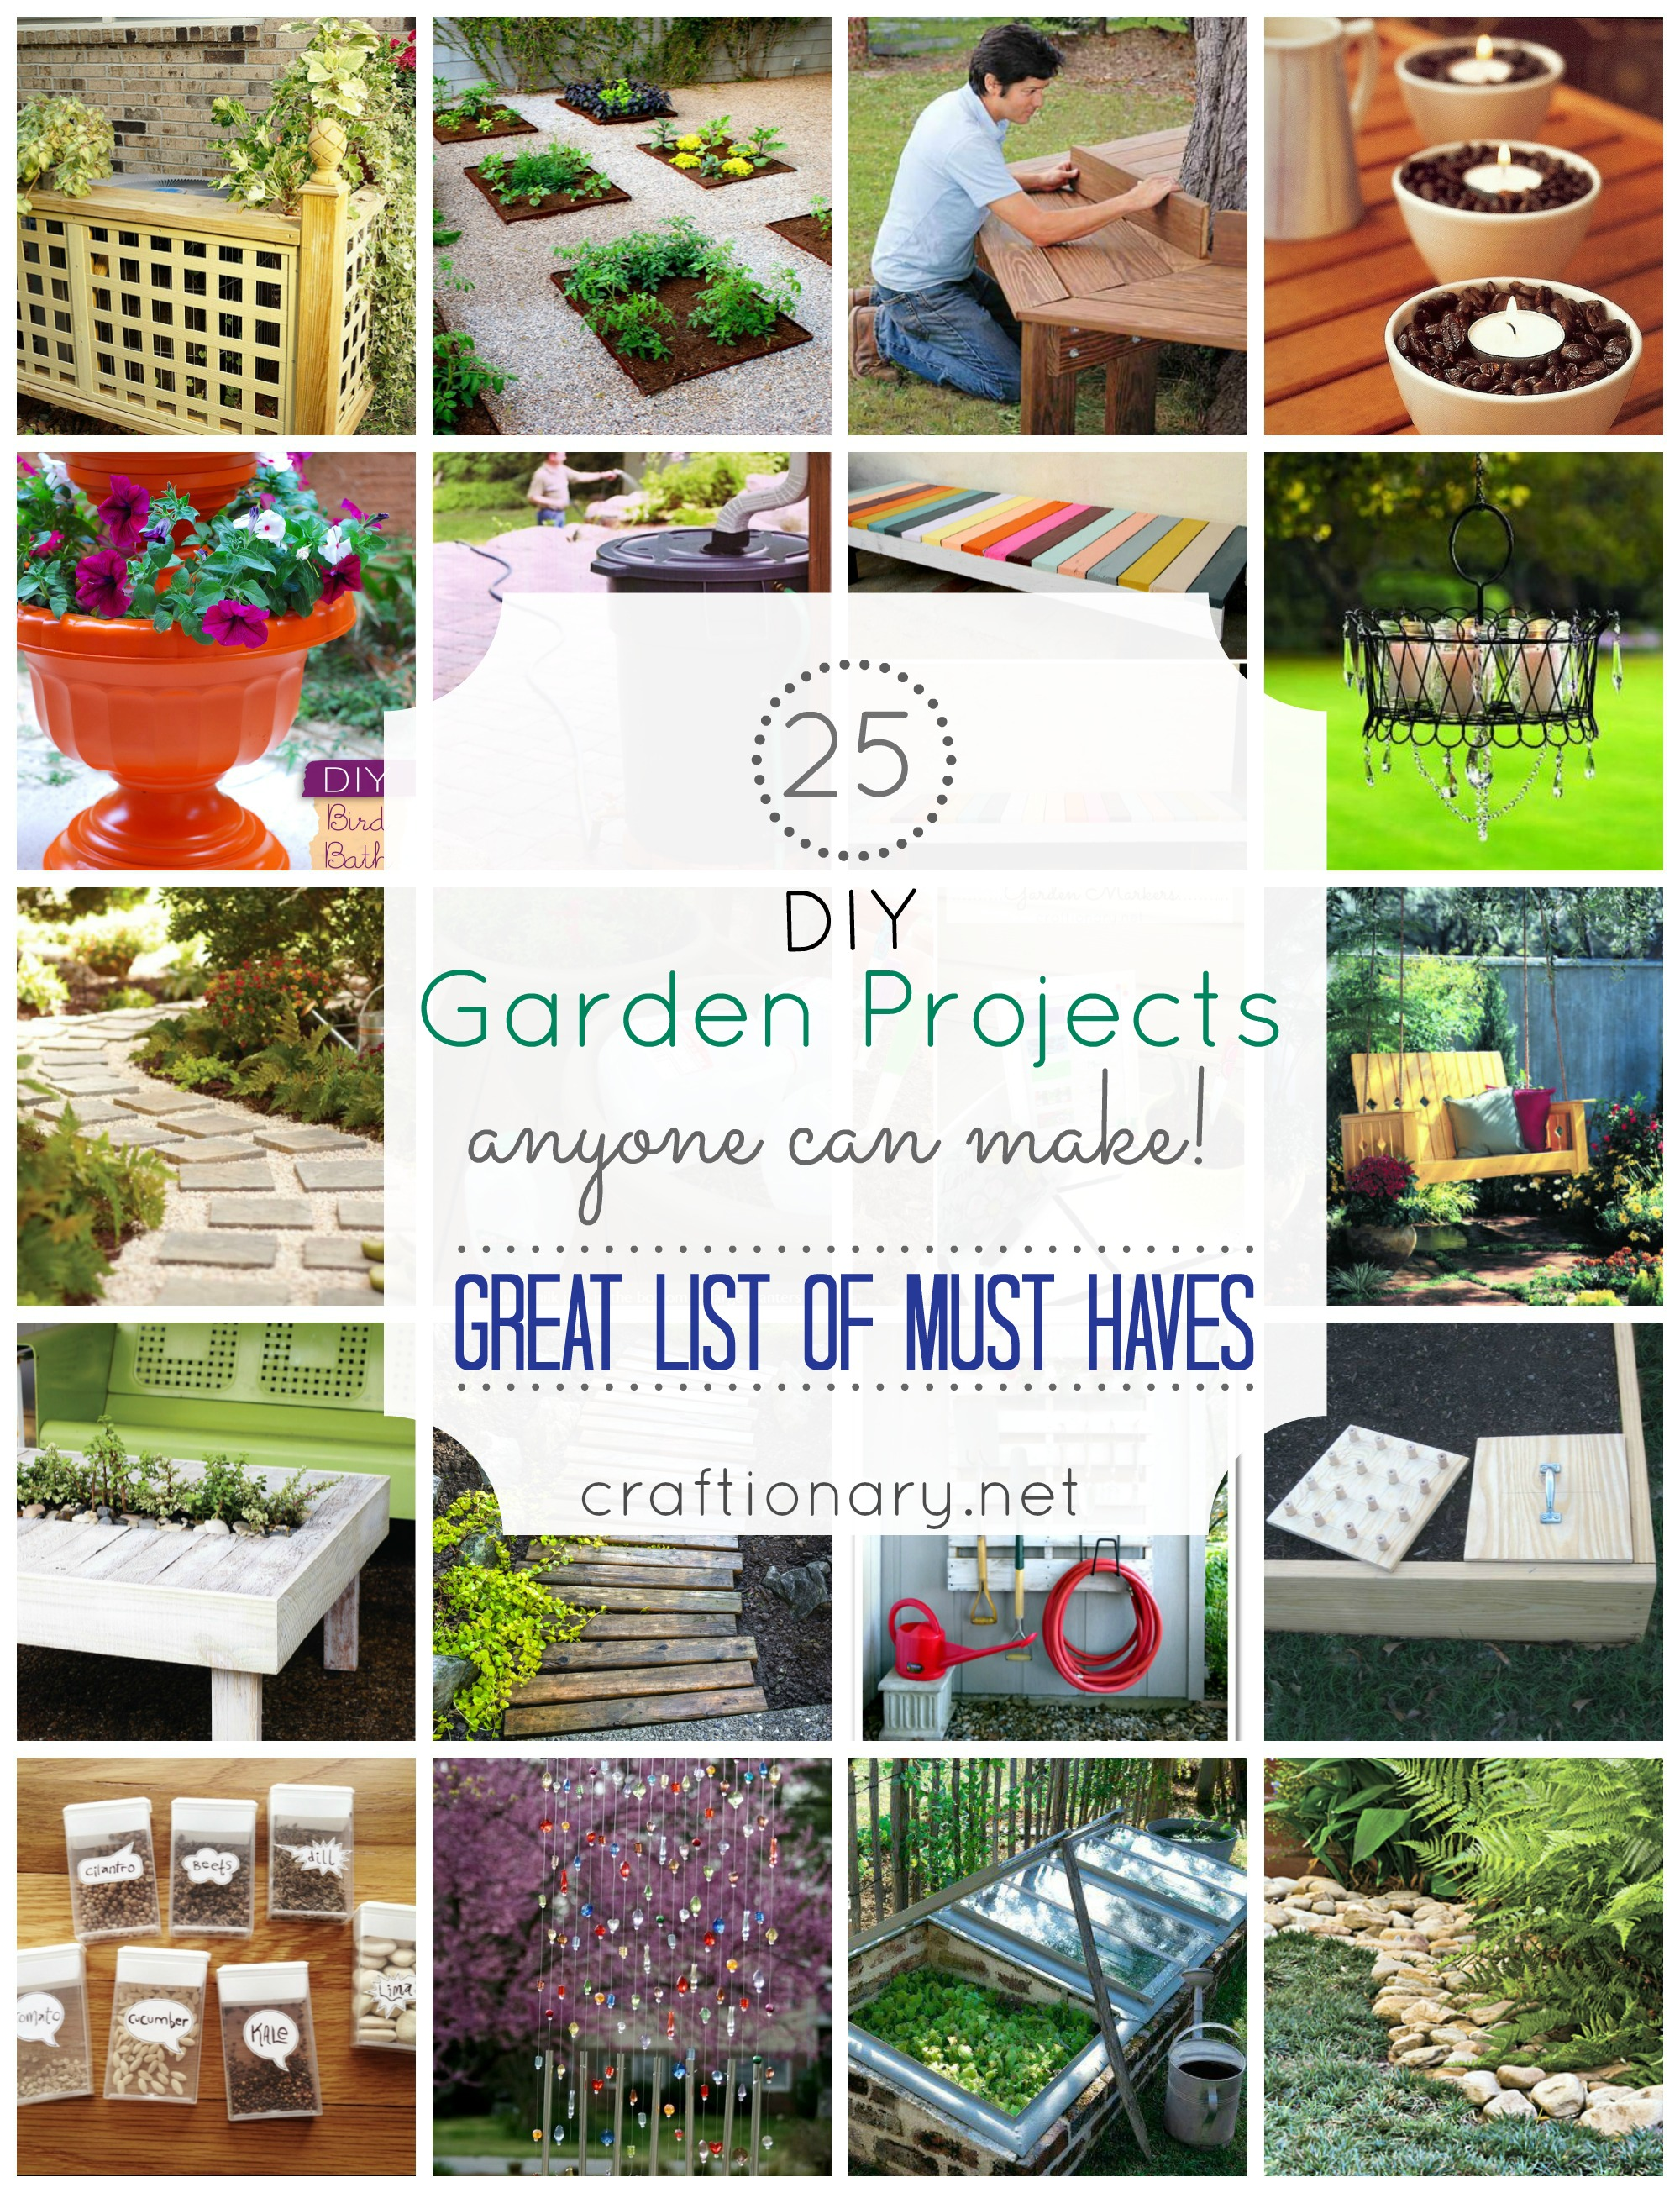 Easy Garden Ideas easy rock garden ideas home design ideas Diy Garden Projects